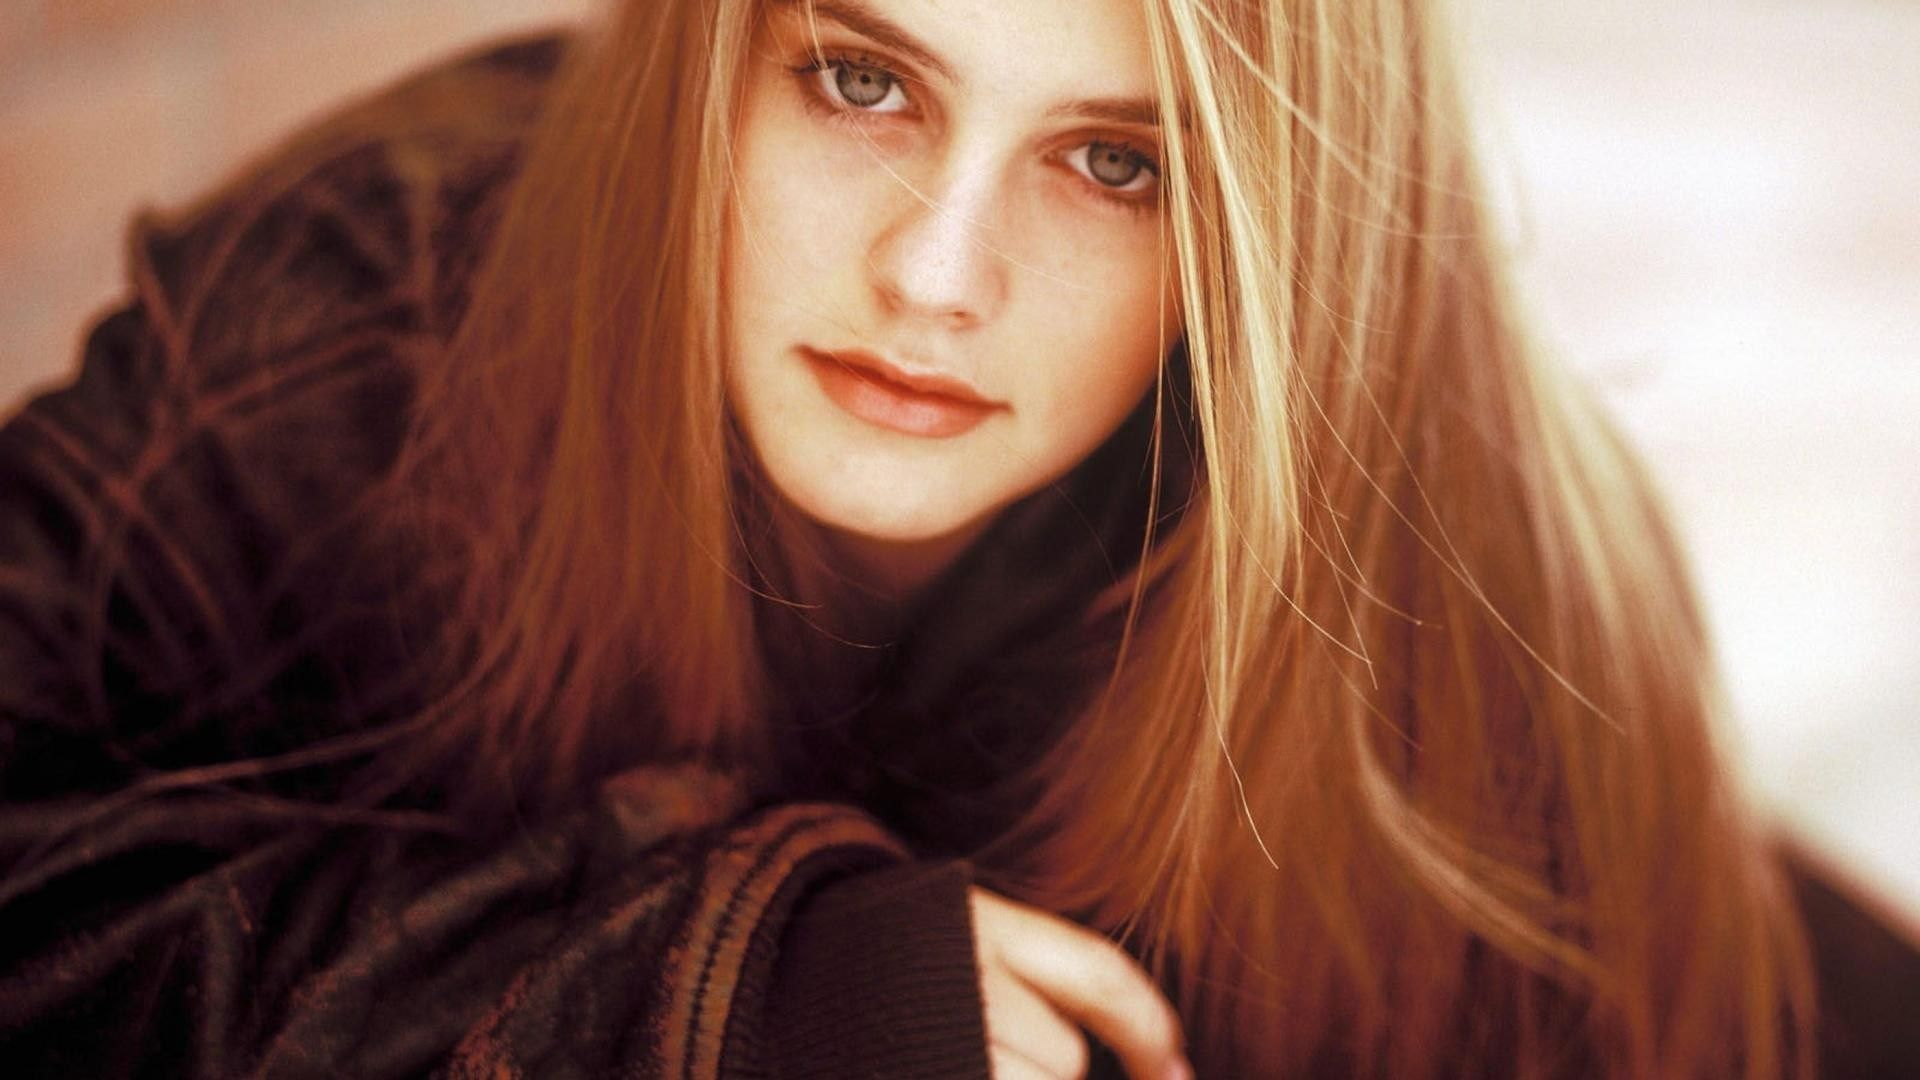 Alicia Silverstone Actress Hd Wallpaper Girls Pinterest